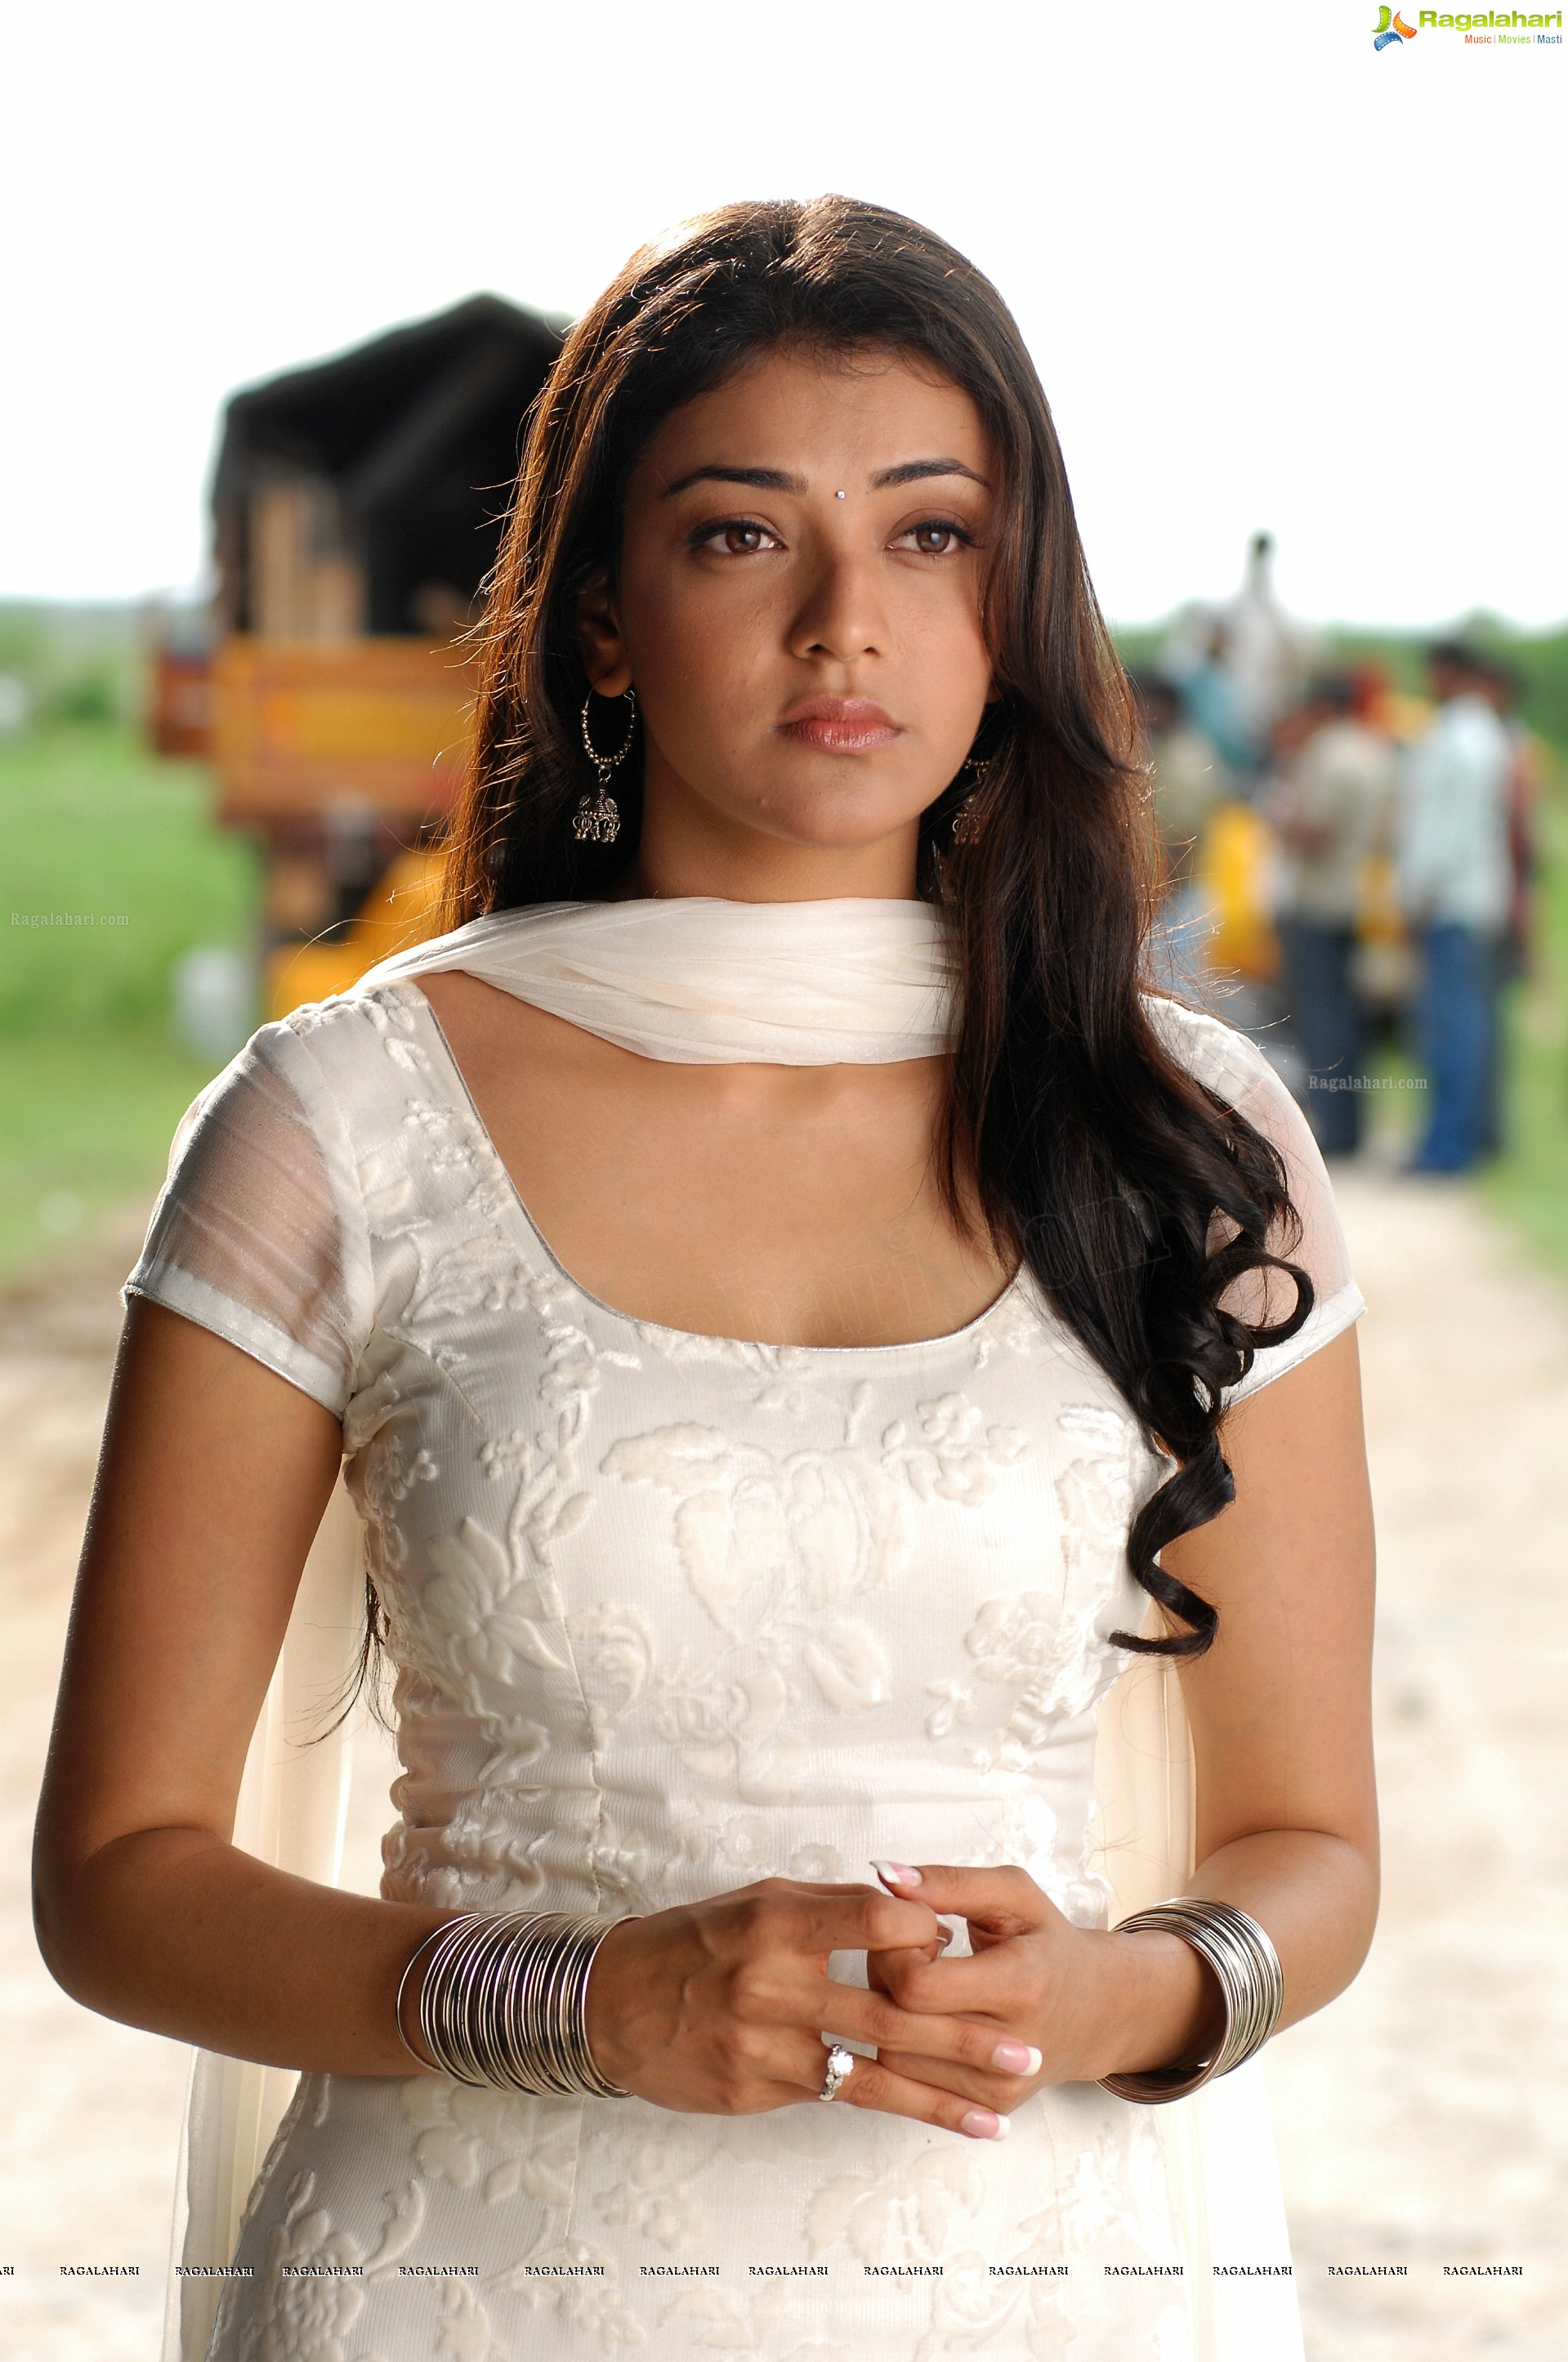 kajal agarwal (hd) image 40 | beautiful tollywood actress pics